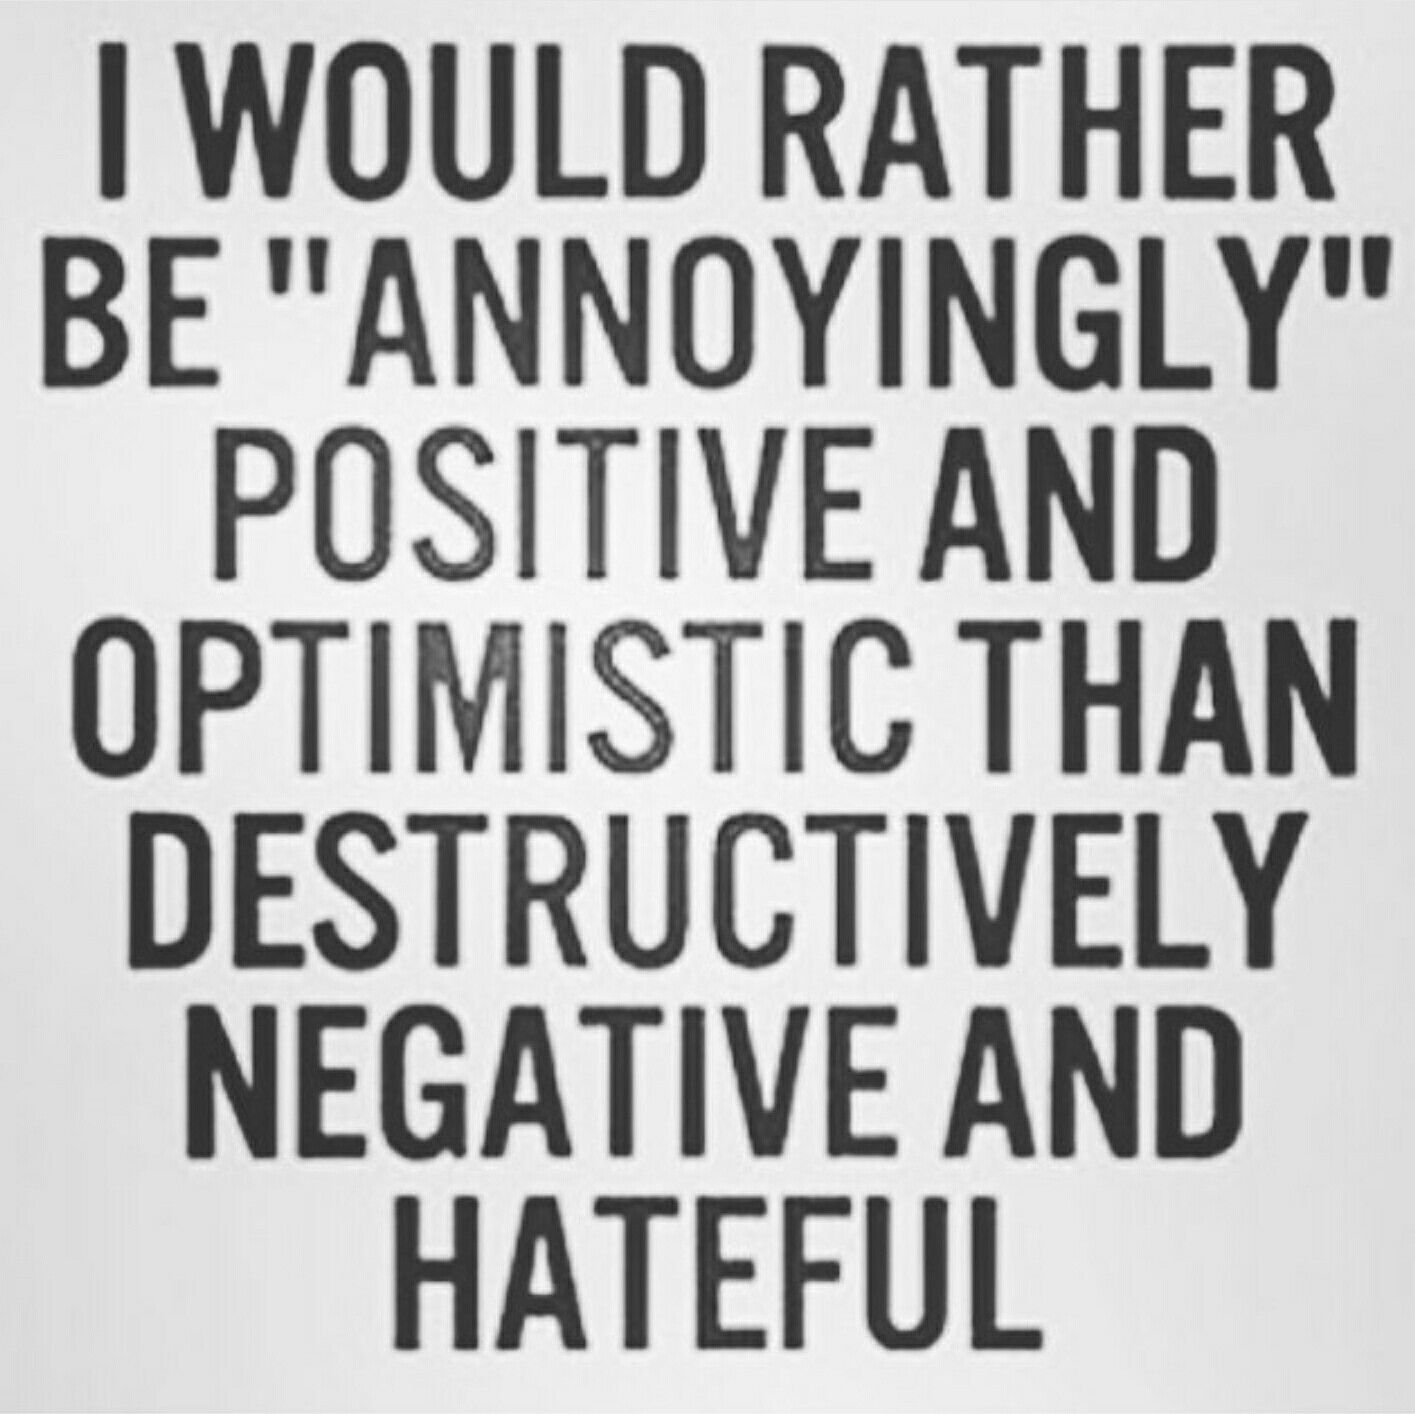 Positive People Quotes Endearing Exactly #positivity #quotes  Quotes  Pinterest  Positivity